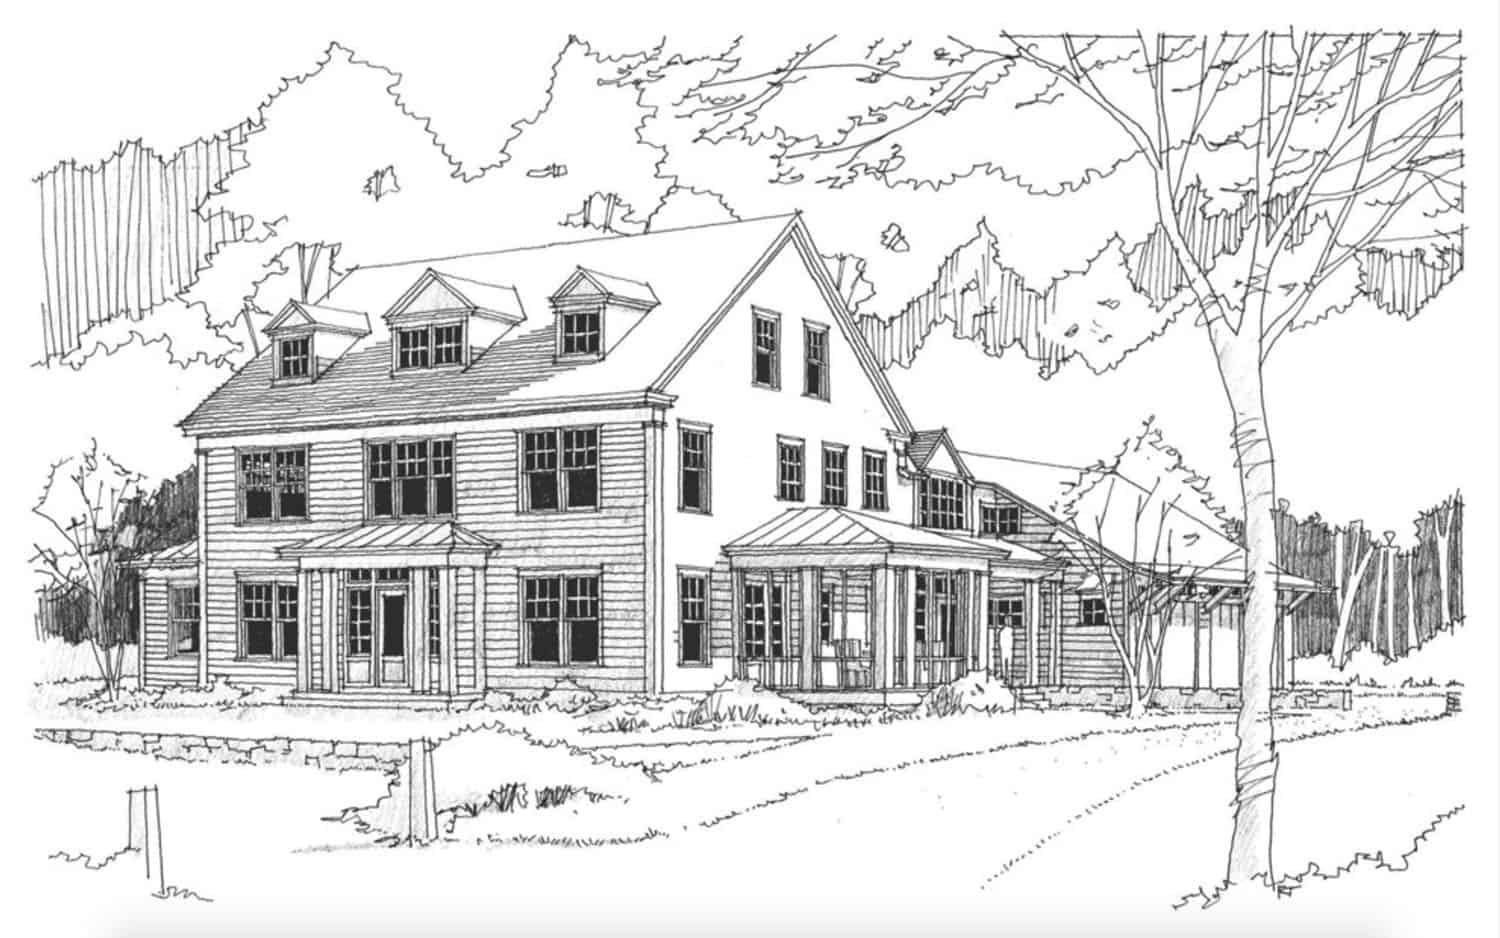 farmhouse-traditional-sketch